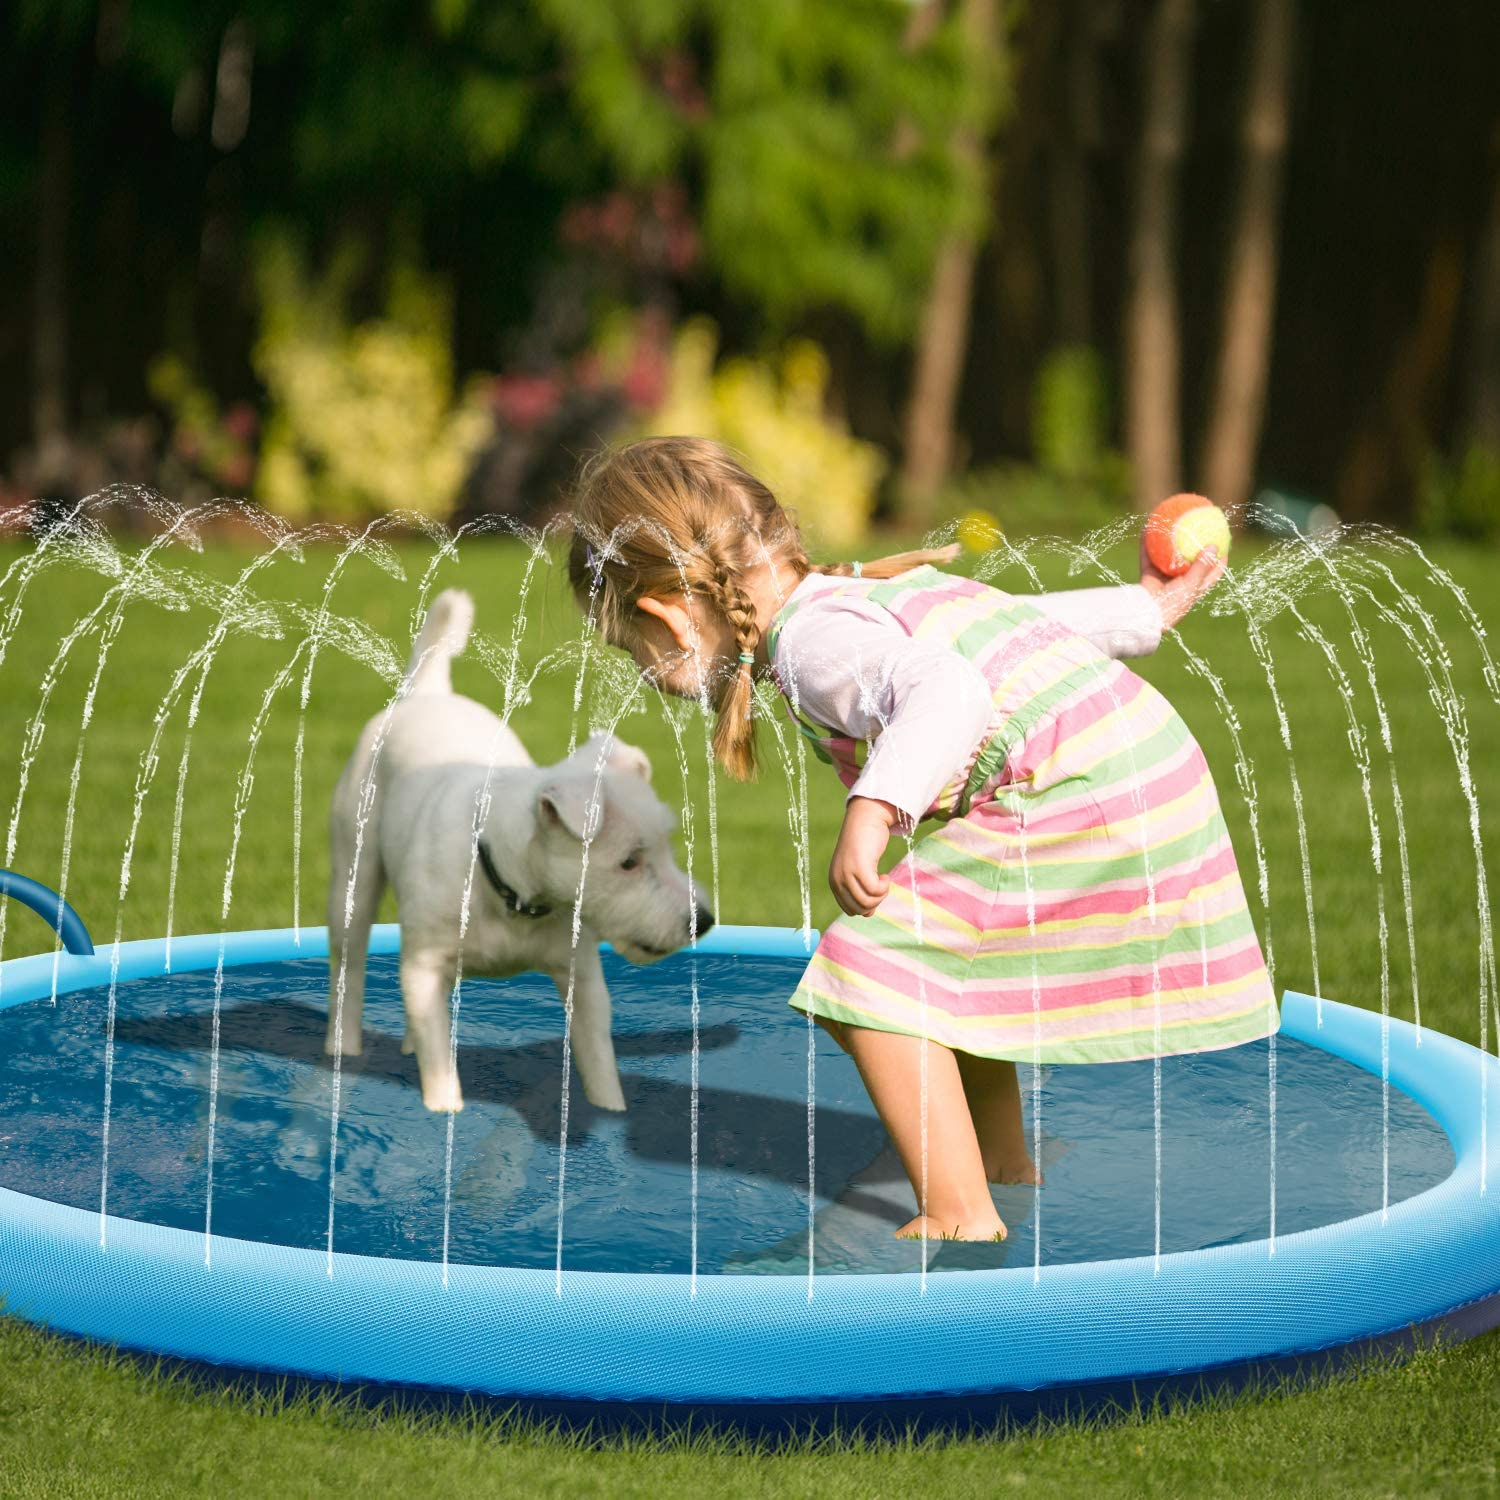 BATURU Splash Pad for Dogs & Toddlers, Dog Bath Pool Super Anti-Slip & Durable Sprinkle Pad for Summer Outdoor Water Toys